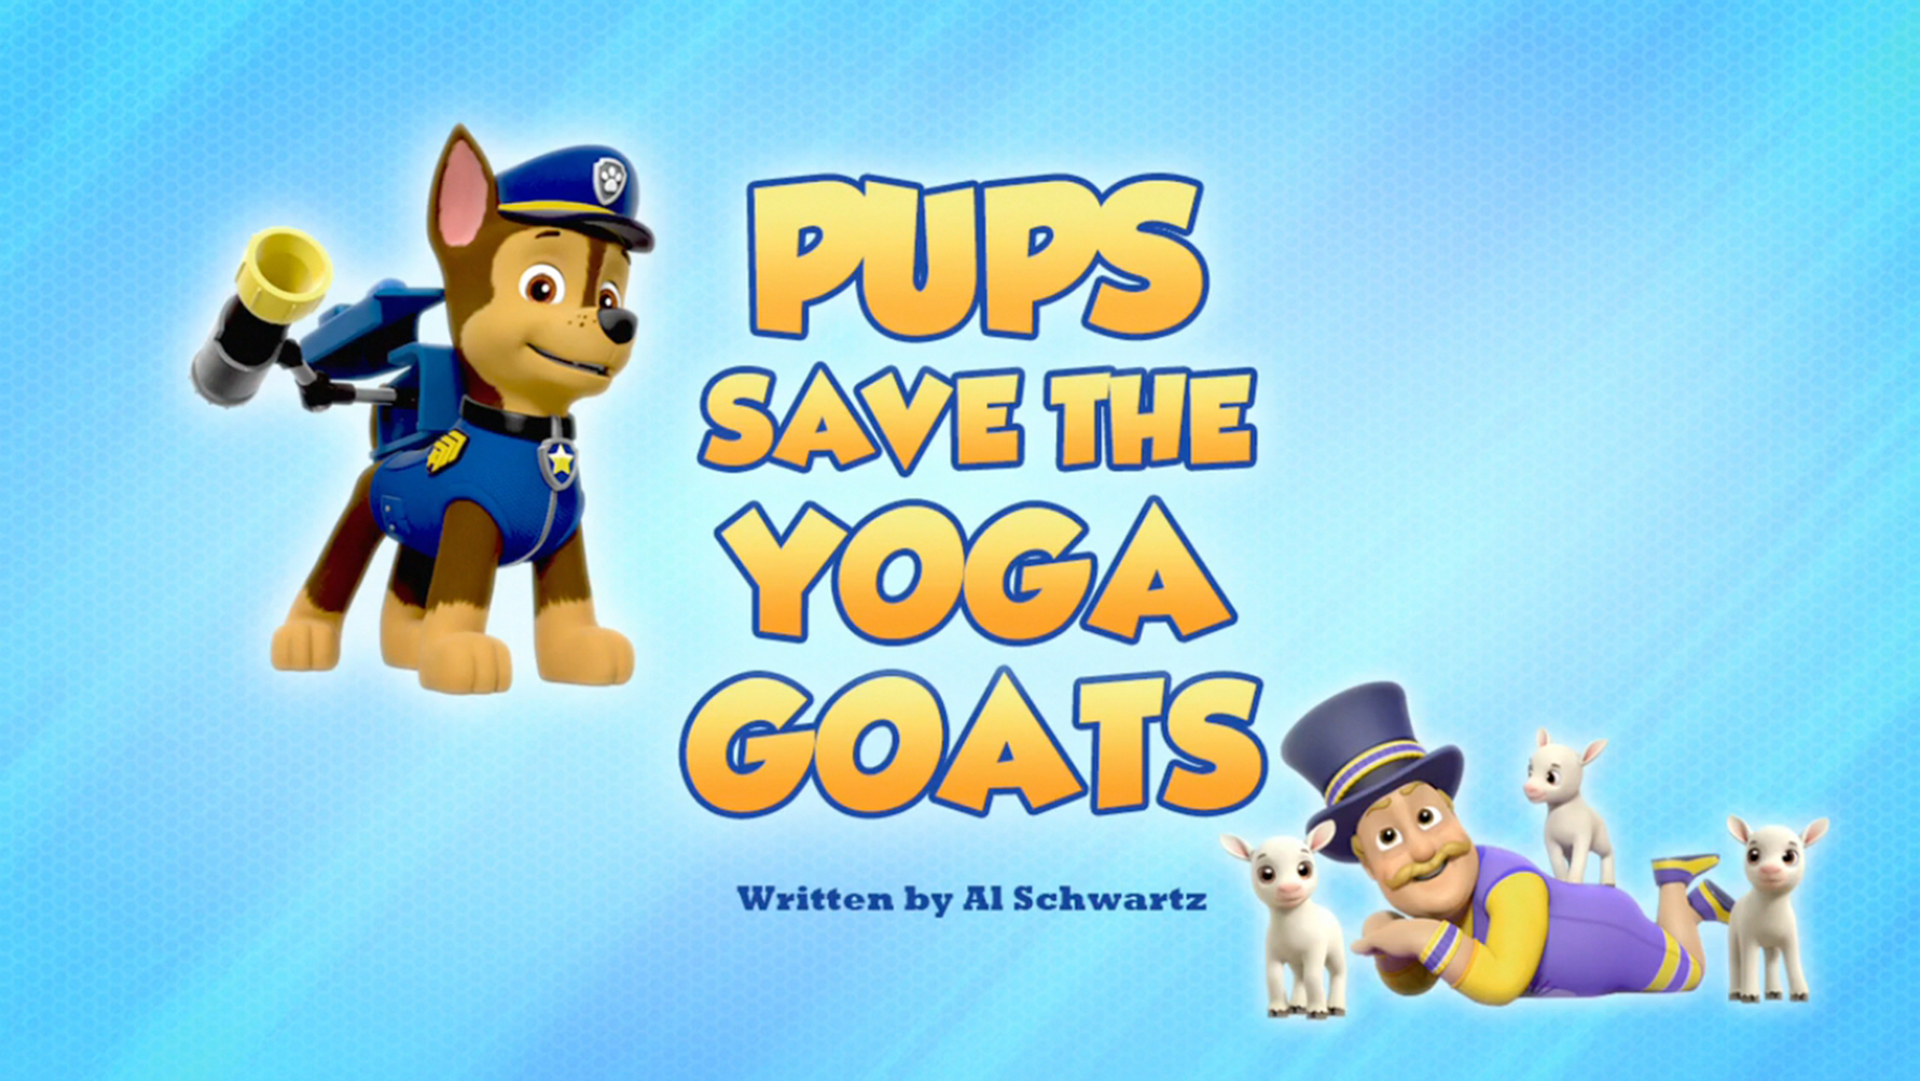 Pups Save the Yoga Goats